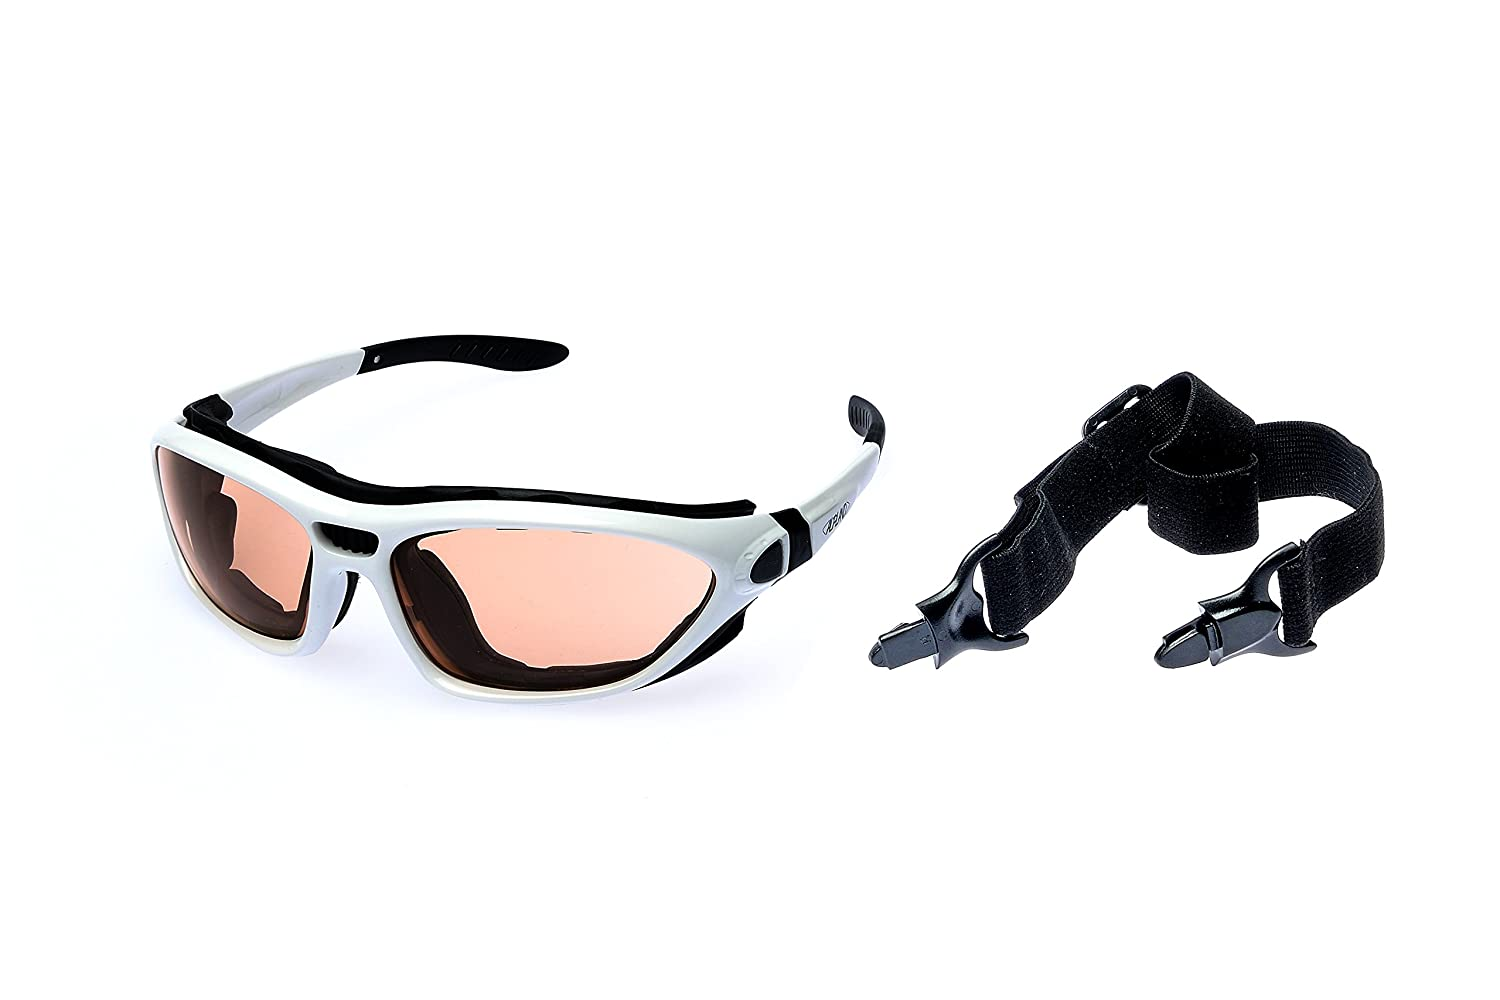 Alpland Sports glasses Mountains glacier glasses for ski sports kitesurfing cycling with band and strap changeable - glass contrast enhanced inkl.Softbag